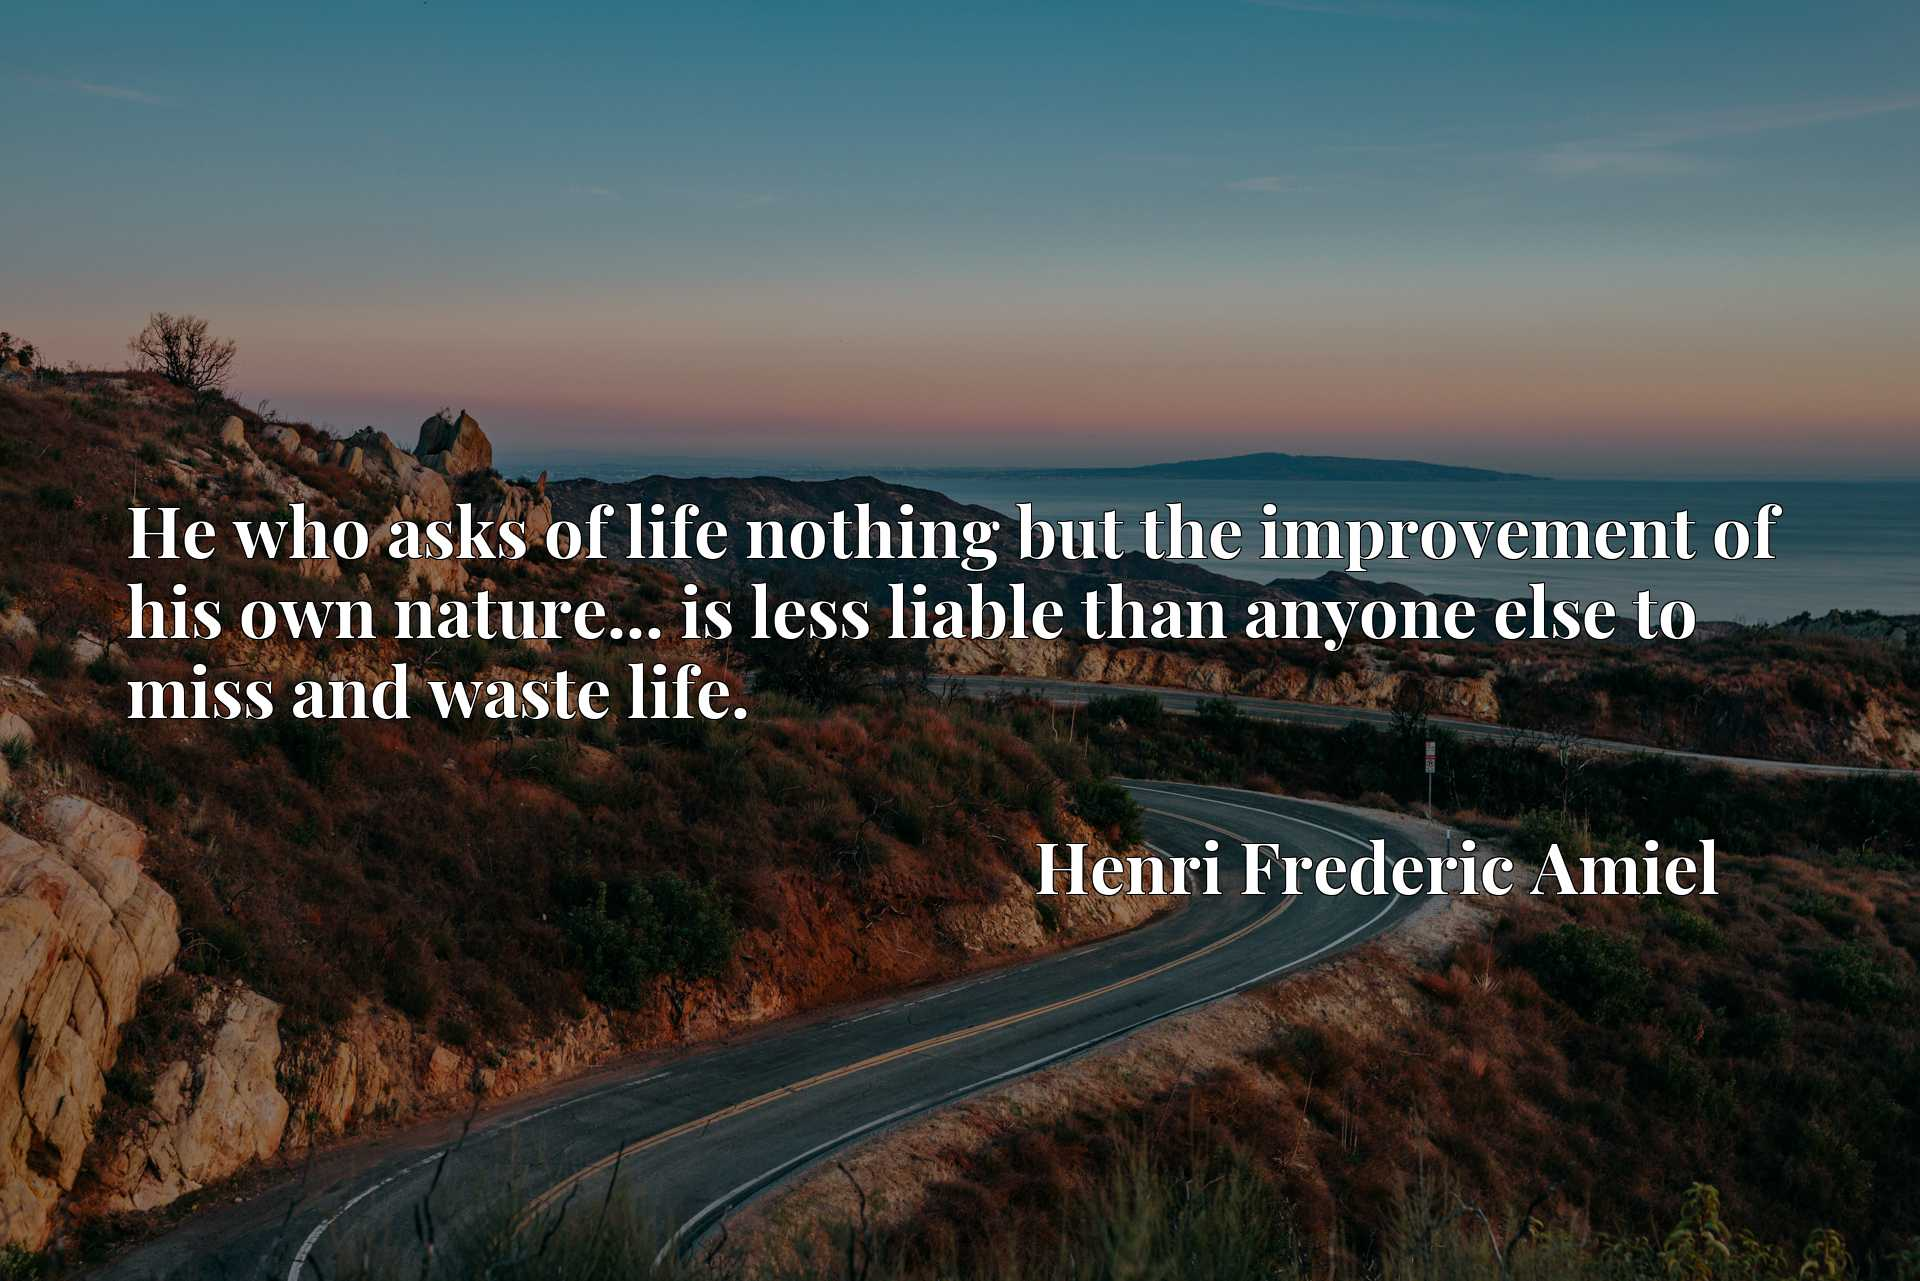 Quote Picture :He who asks of life nothing but the improvement of his own nature... is less liable than anyone else to miss and waste life.